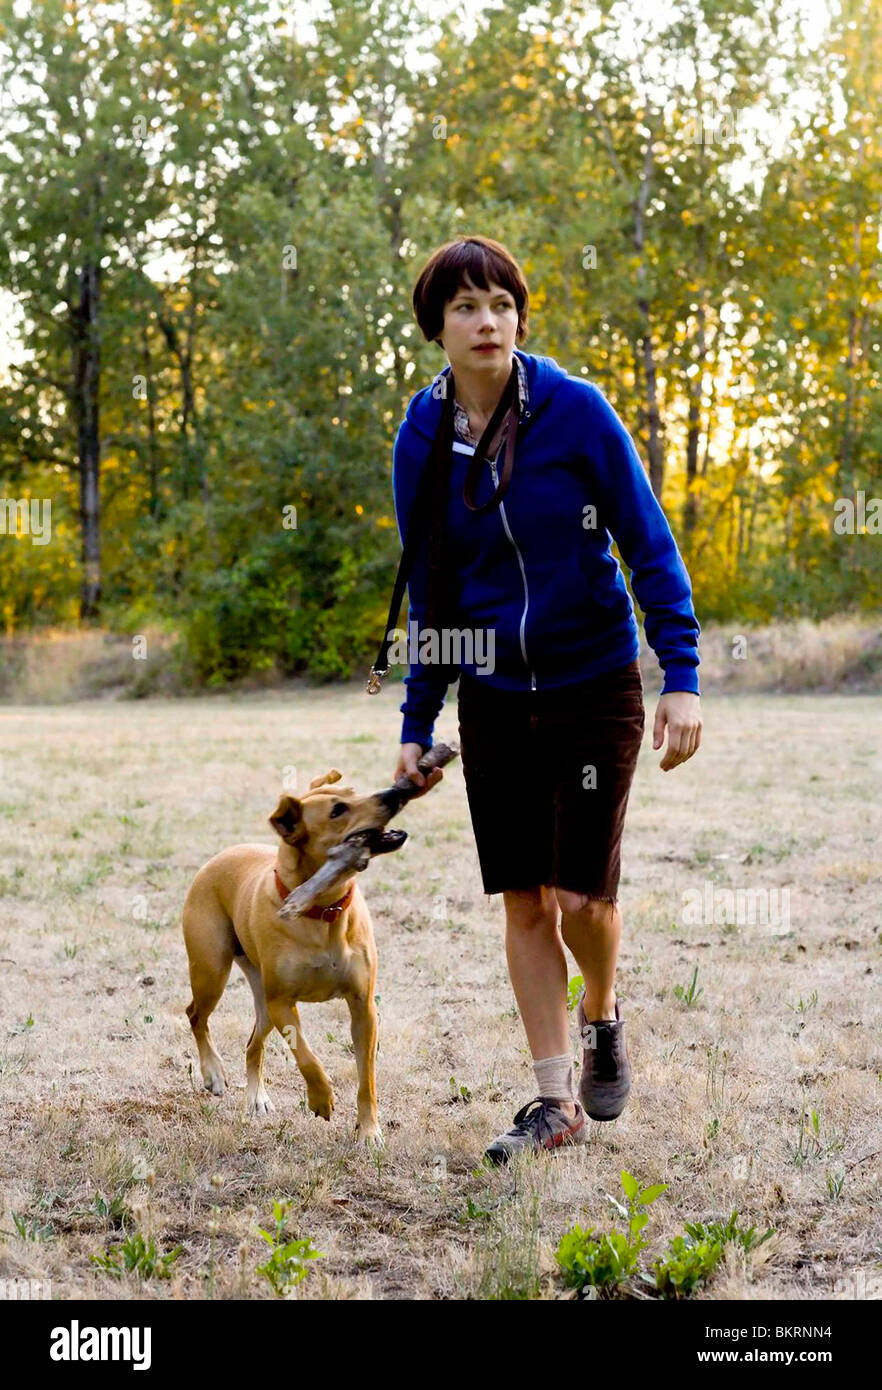 WENDY AND LUCY (2008) MICHELLE WILLIAMS KELLY REICHARDT (DIR) WEND 001 - Stock Image